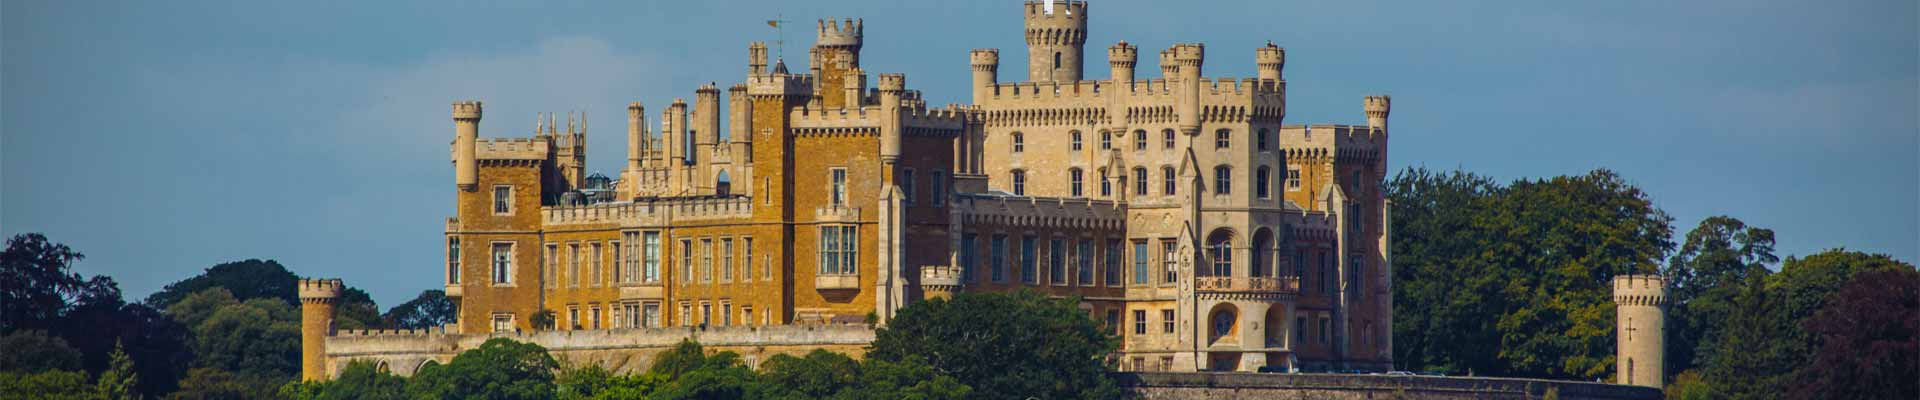 Photo of the stunning Belvoir Castle